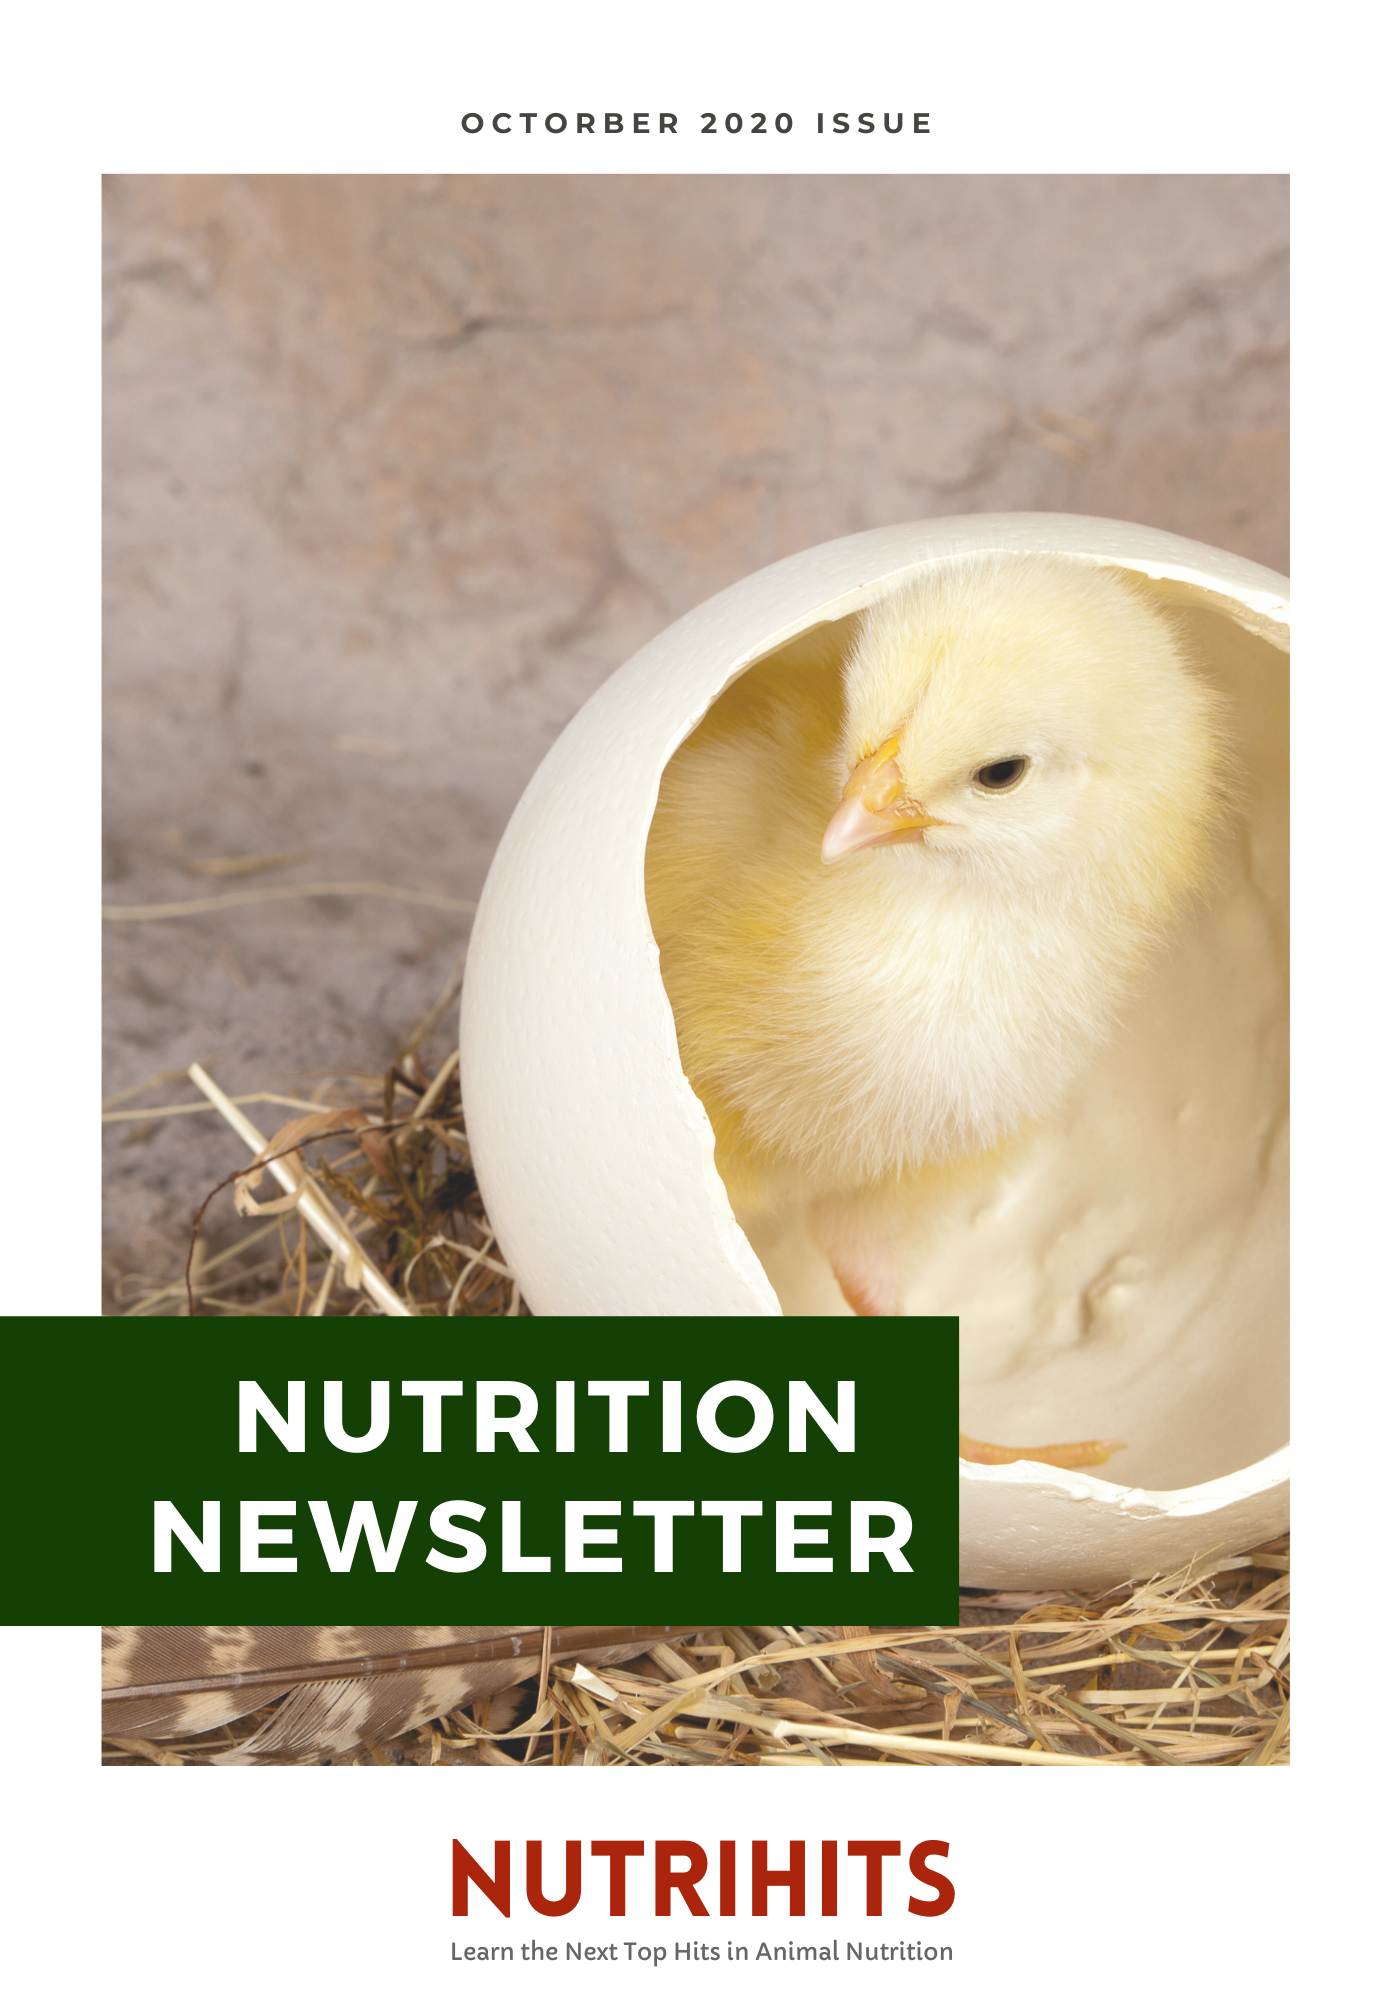 Nutrition Newsletter - October 2020